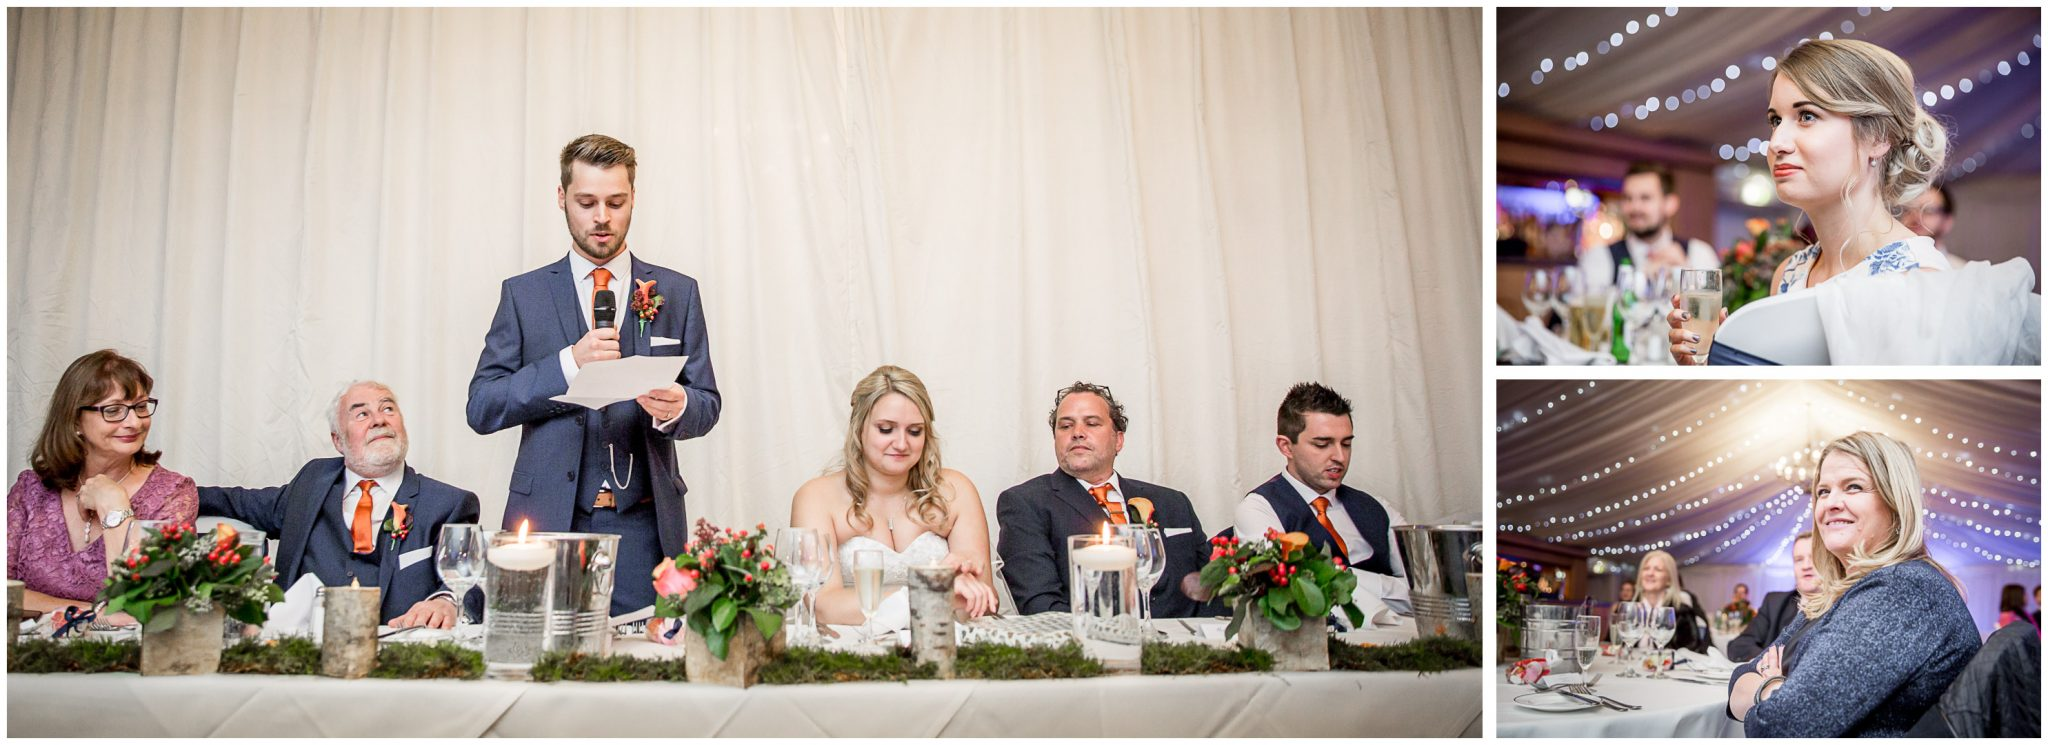 Audleys Wood wedding photograhy the speeches